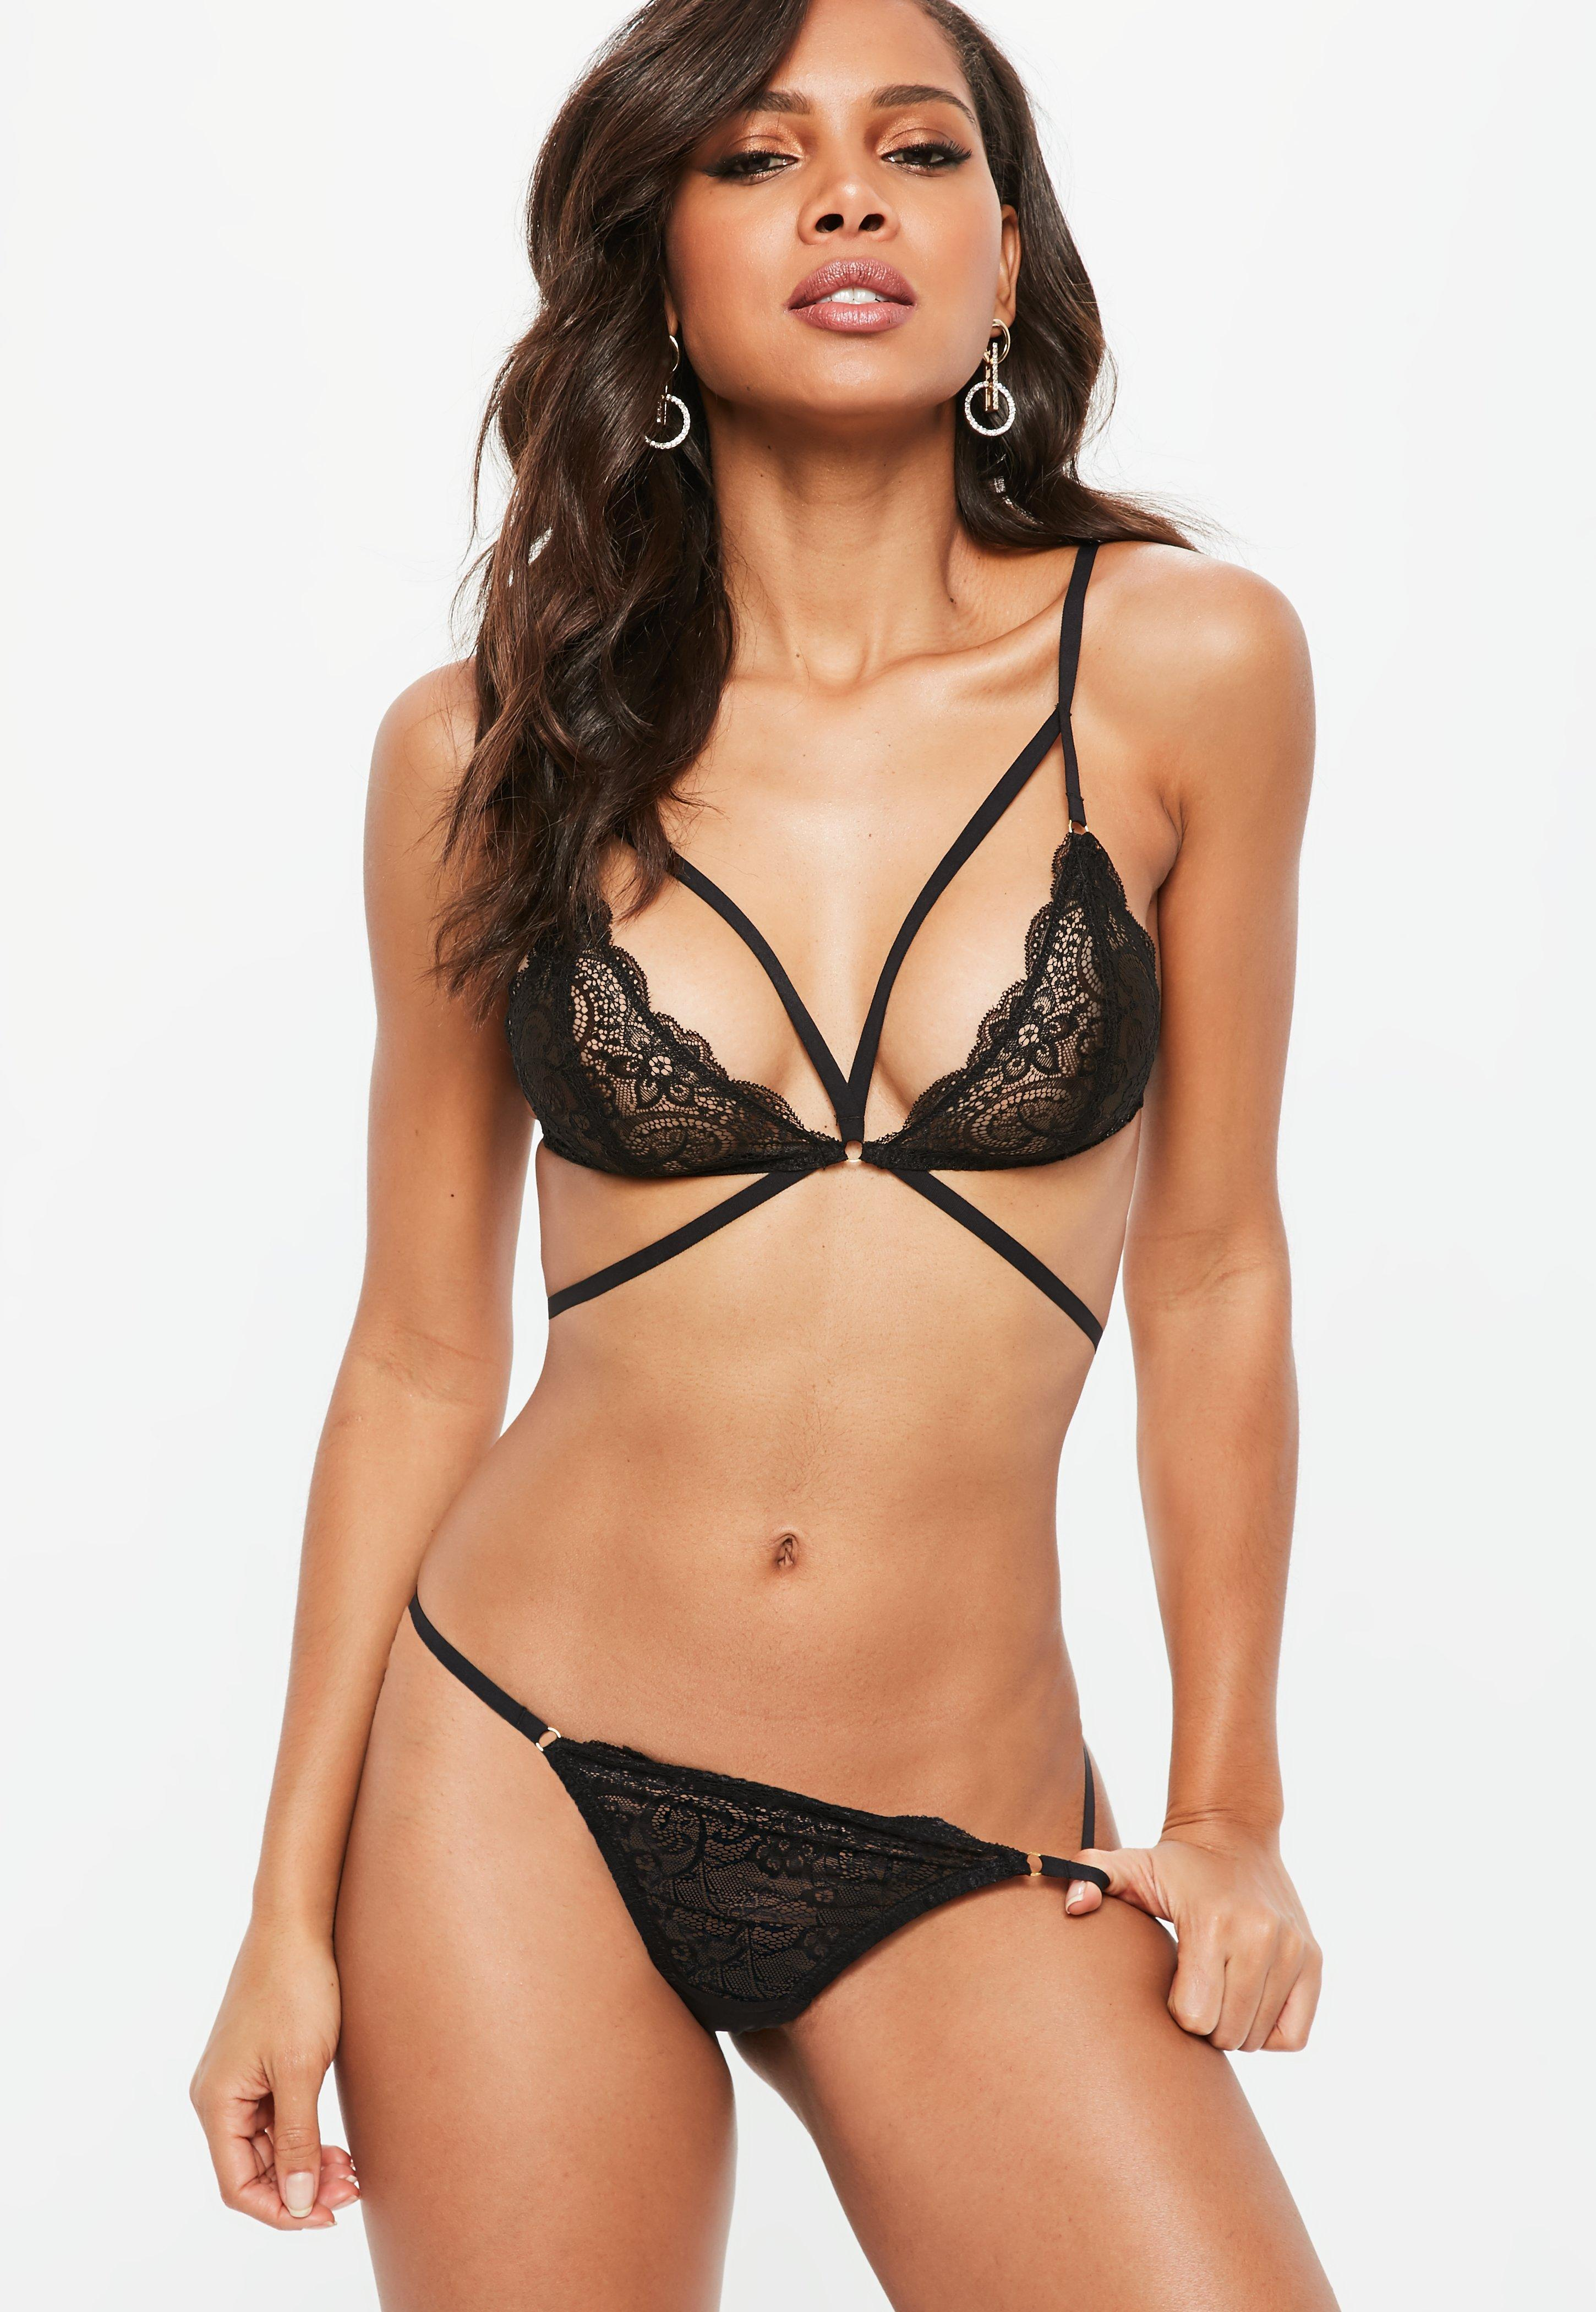 734918c00f Missguided - Black Strappy Lace Triangle Bra - Lyst. View fullscreen